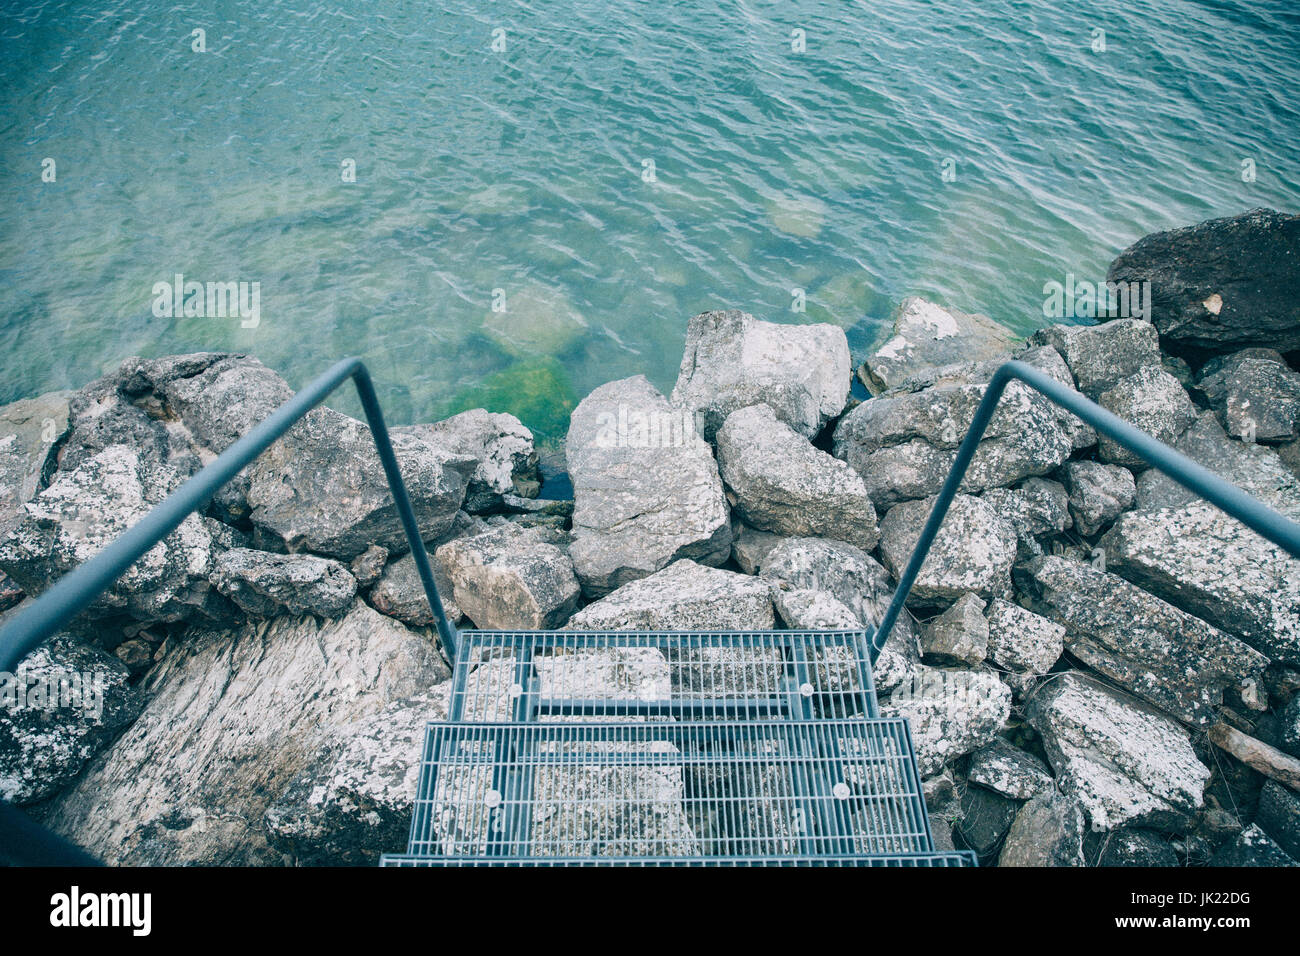 Stairs to the Water - Stock Image